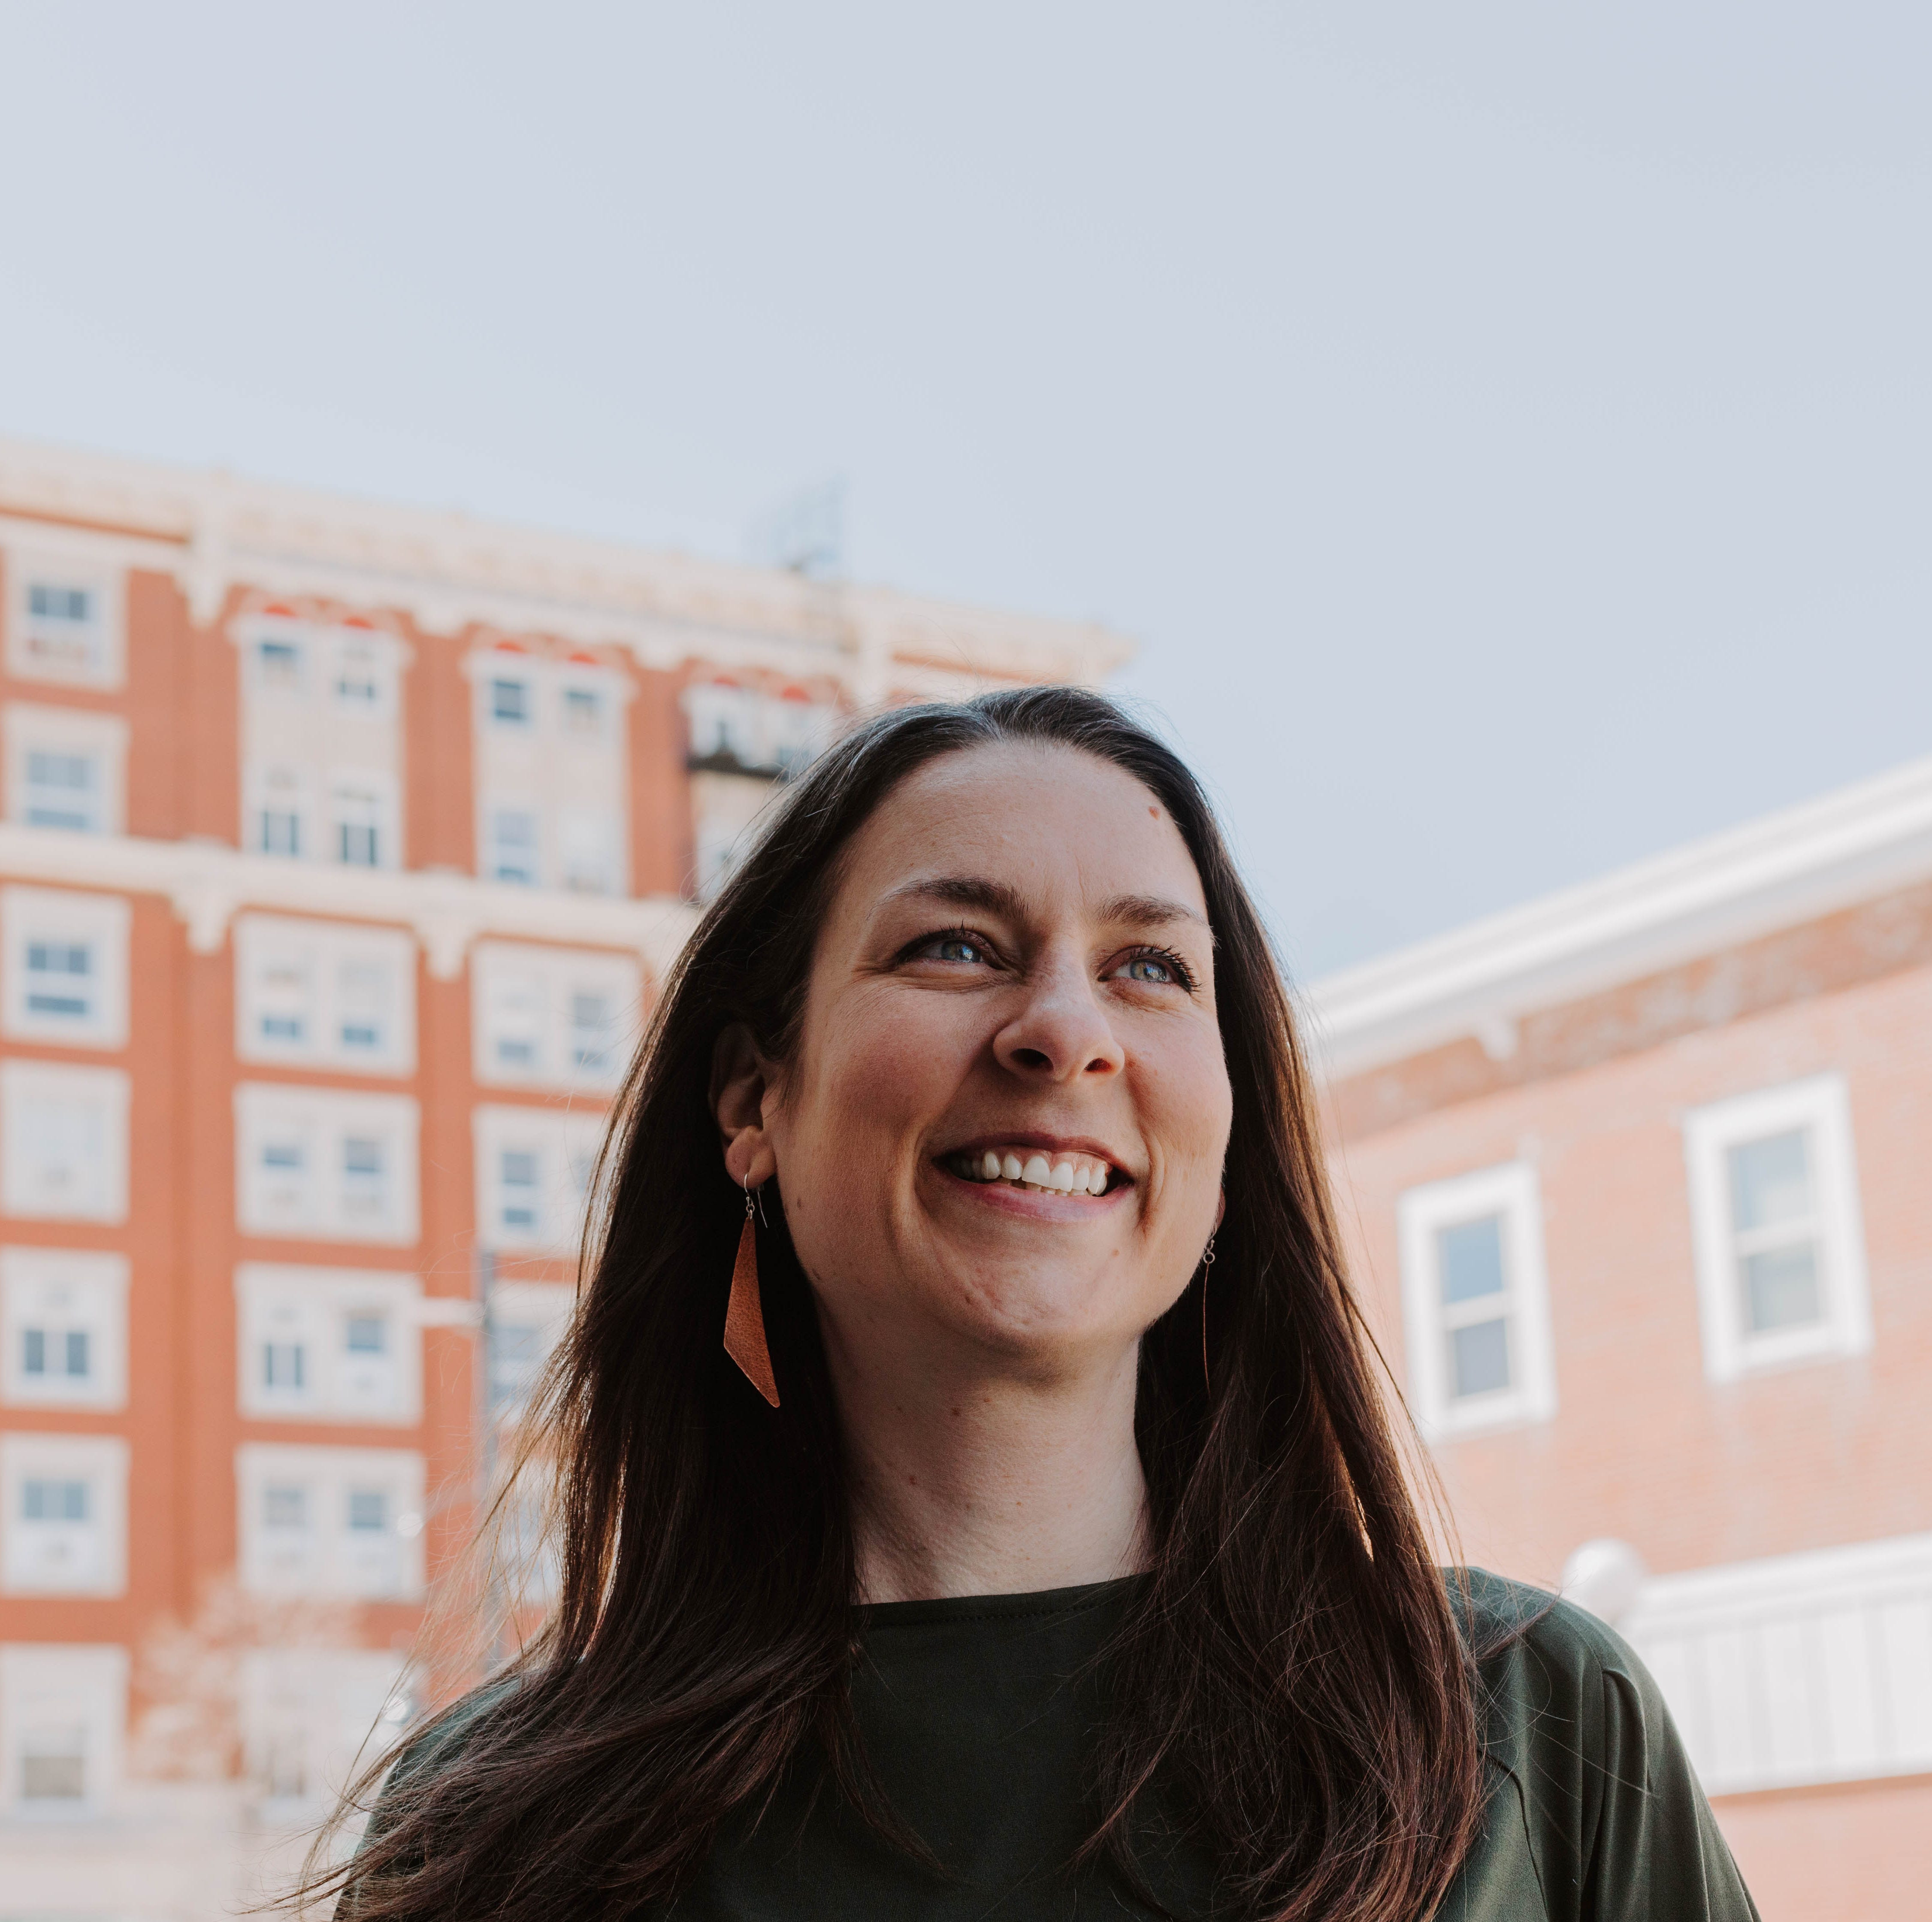 Attorney Laura Bergus is running for Iowa City Council